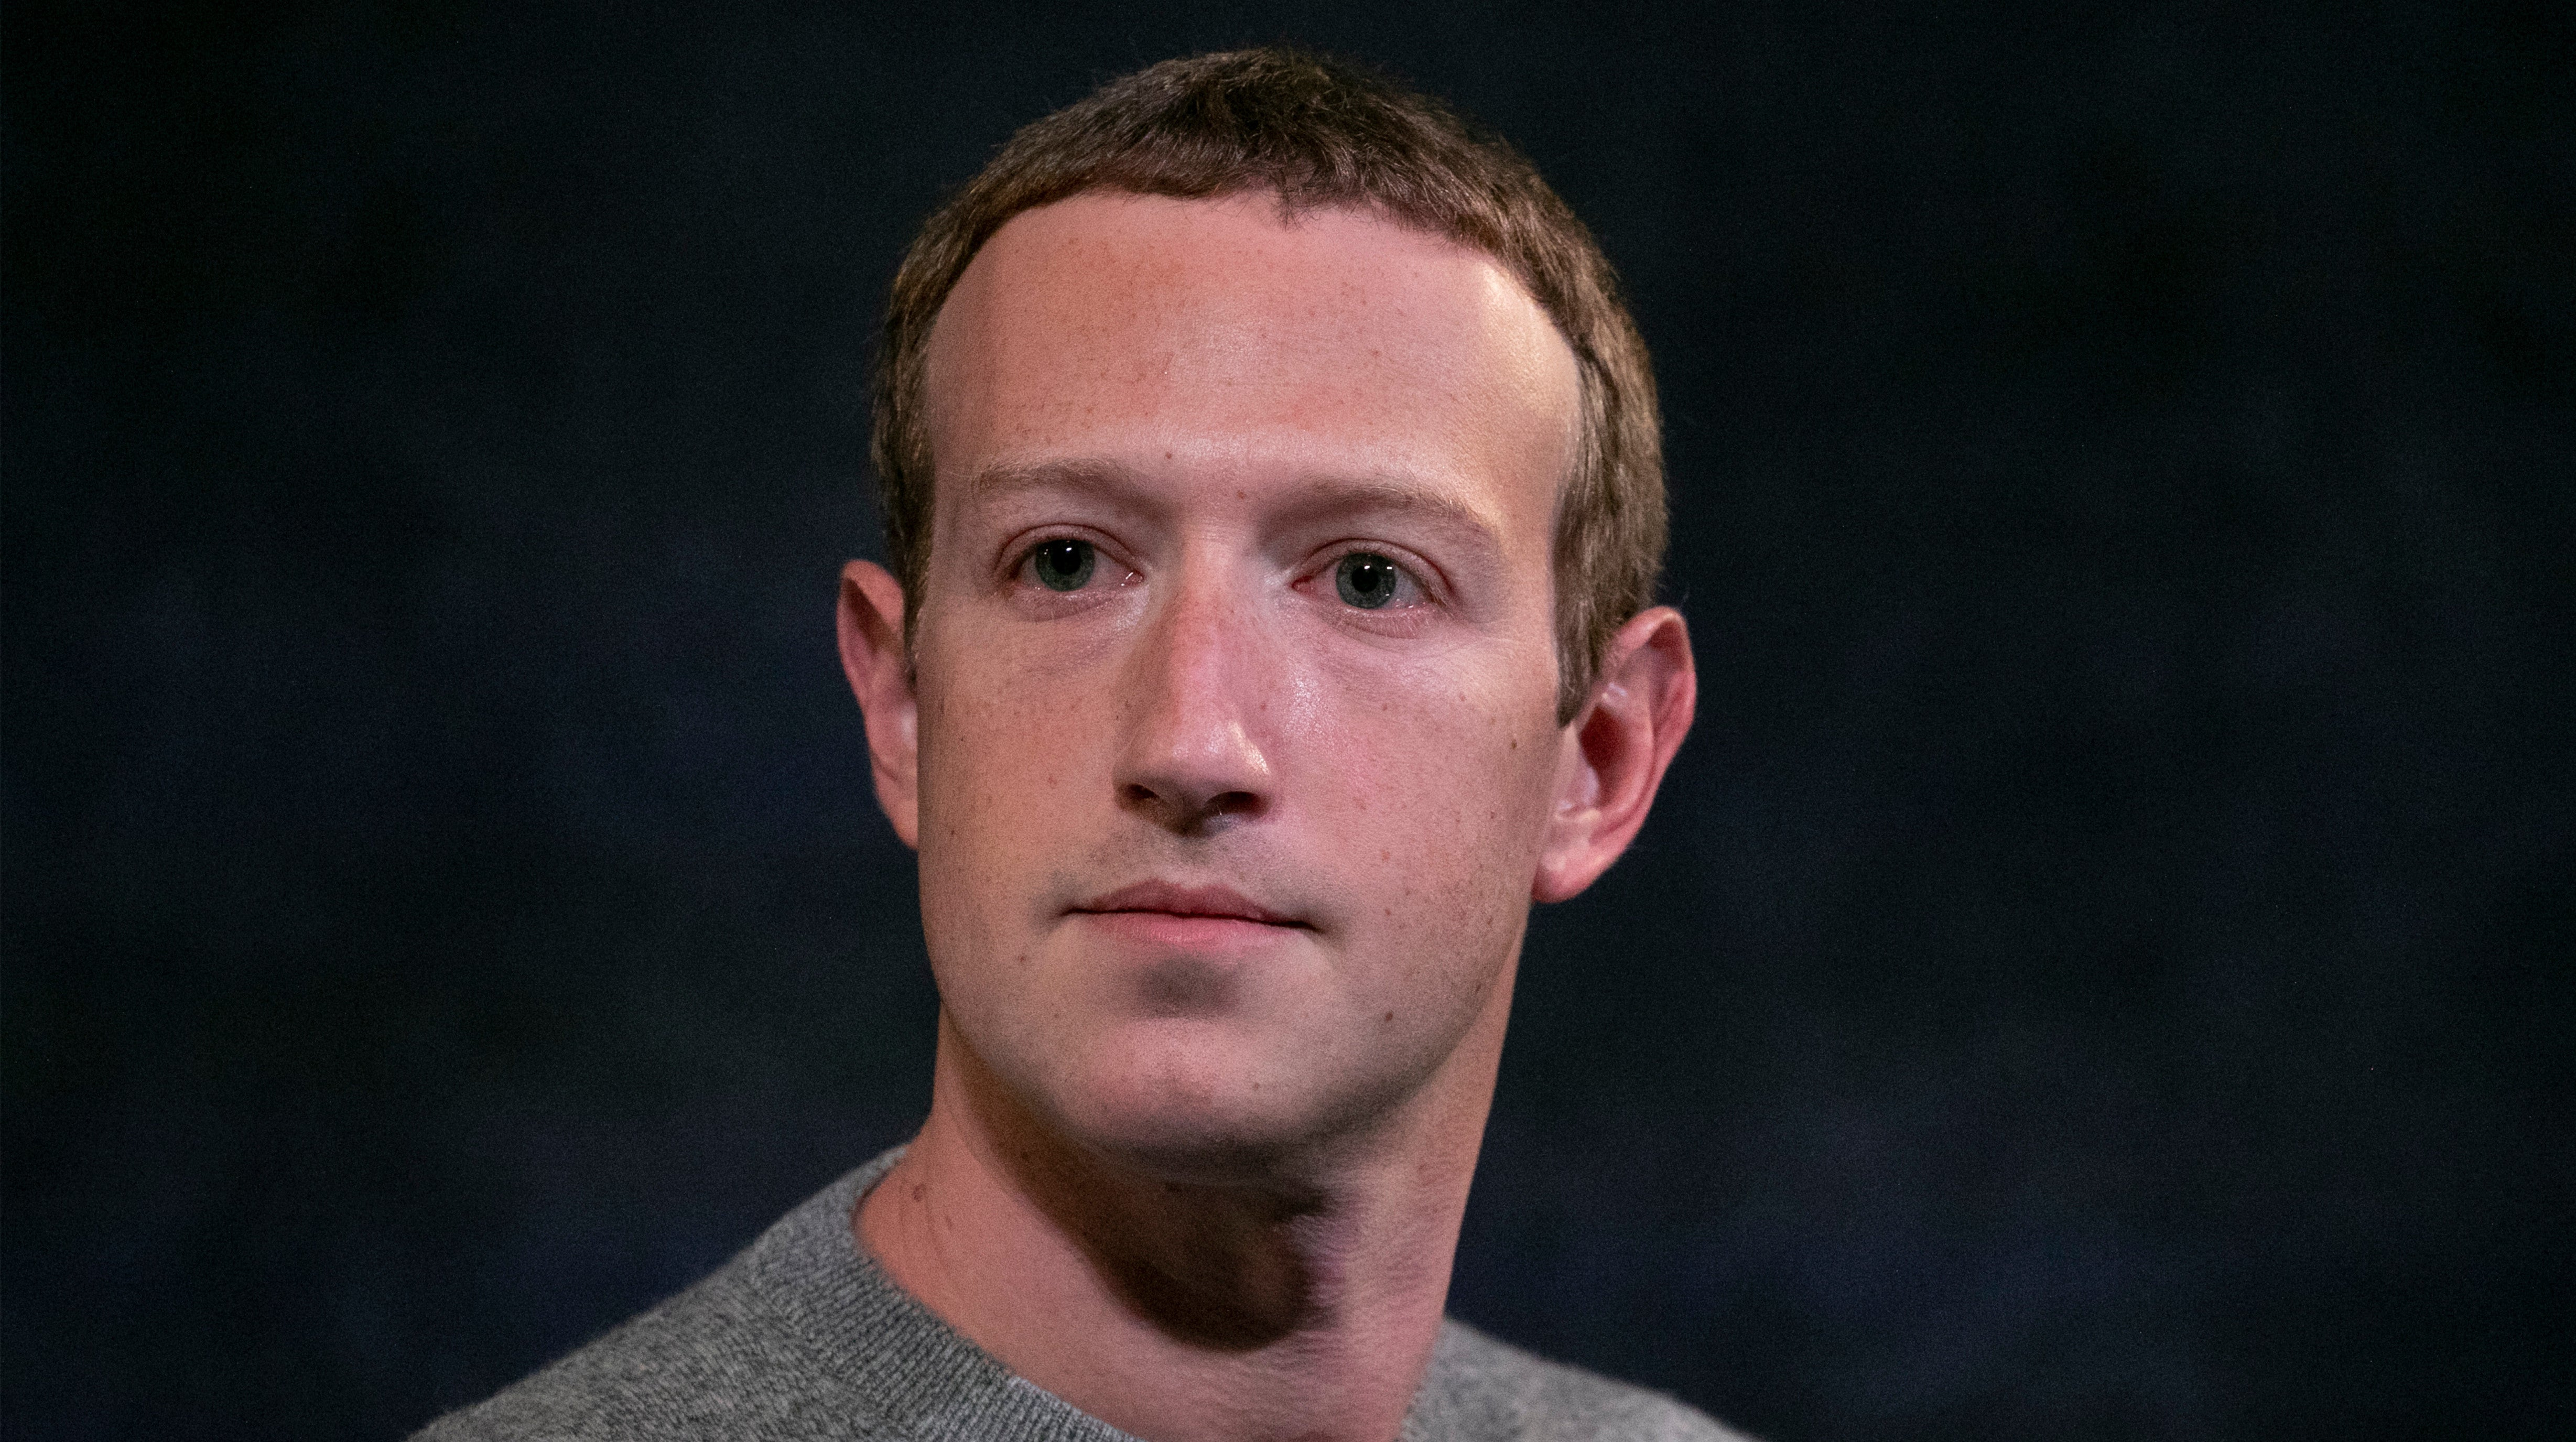 Amnesty International: Google And Facebook Are A Threat To Human Rights